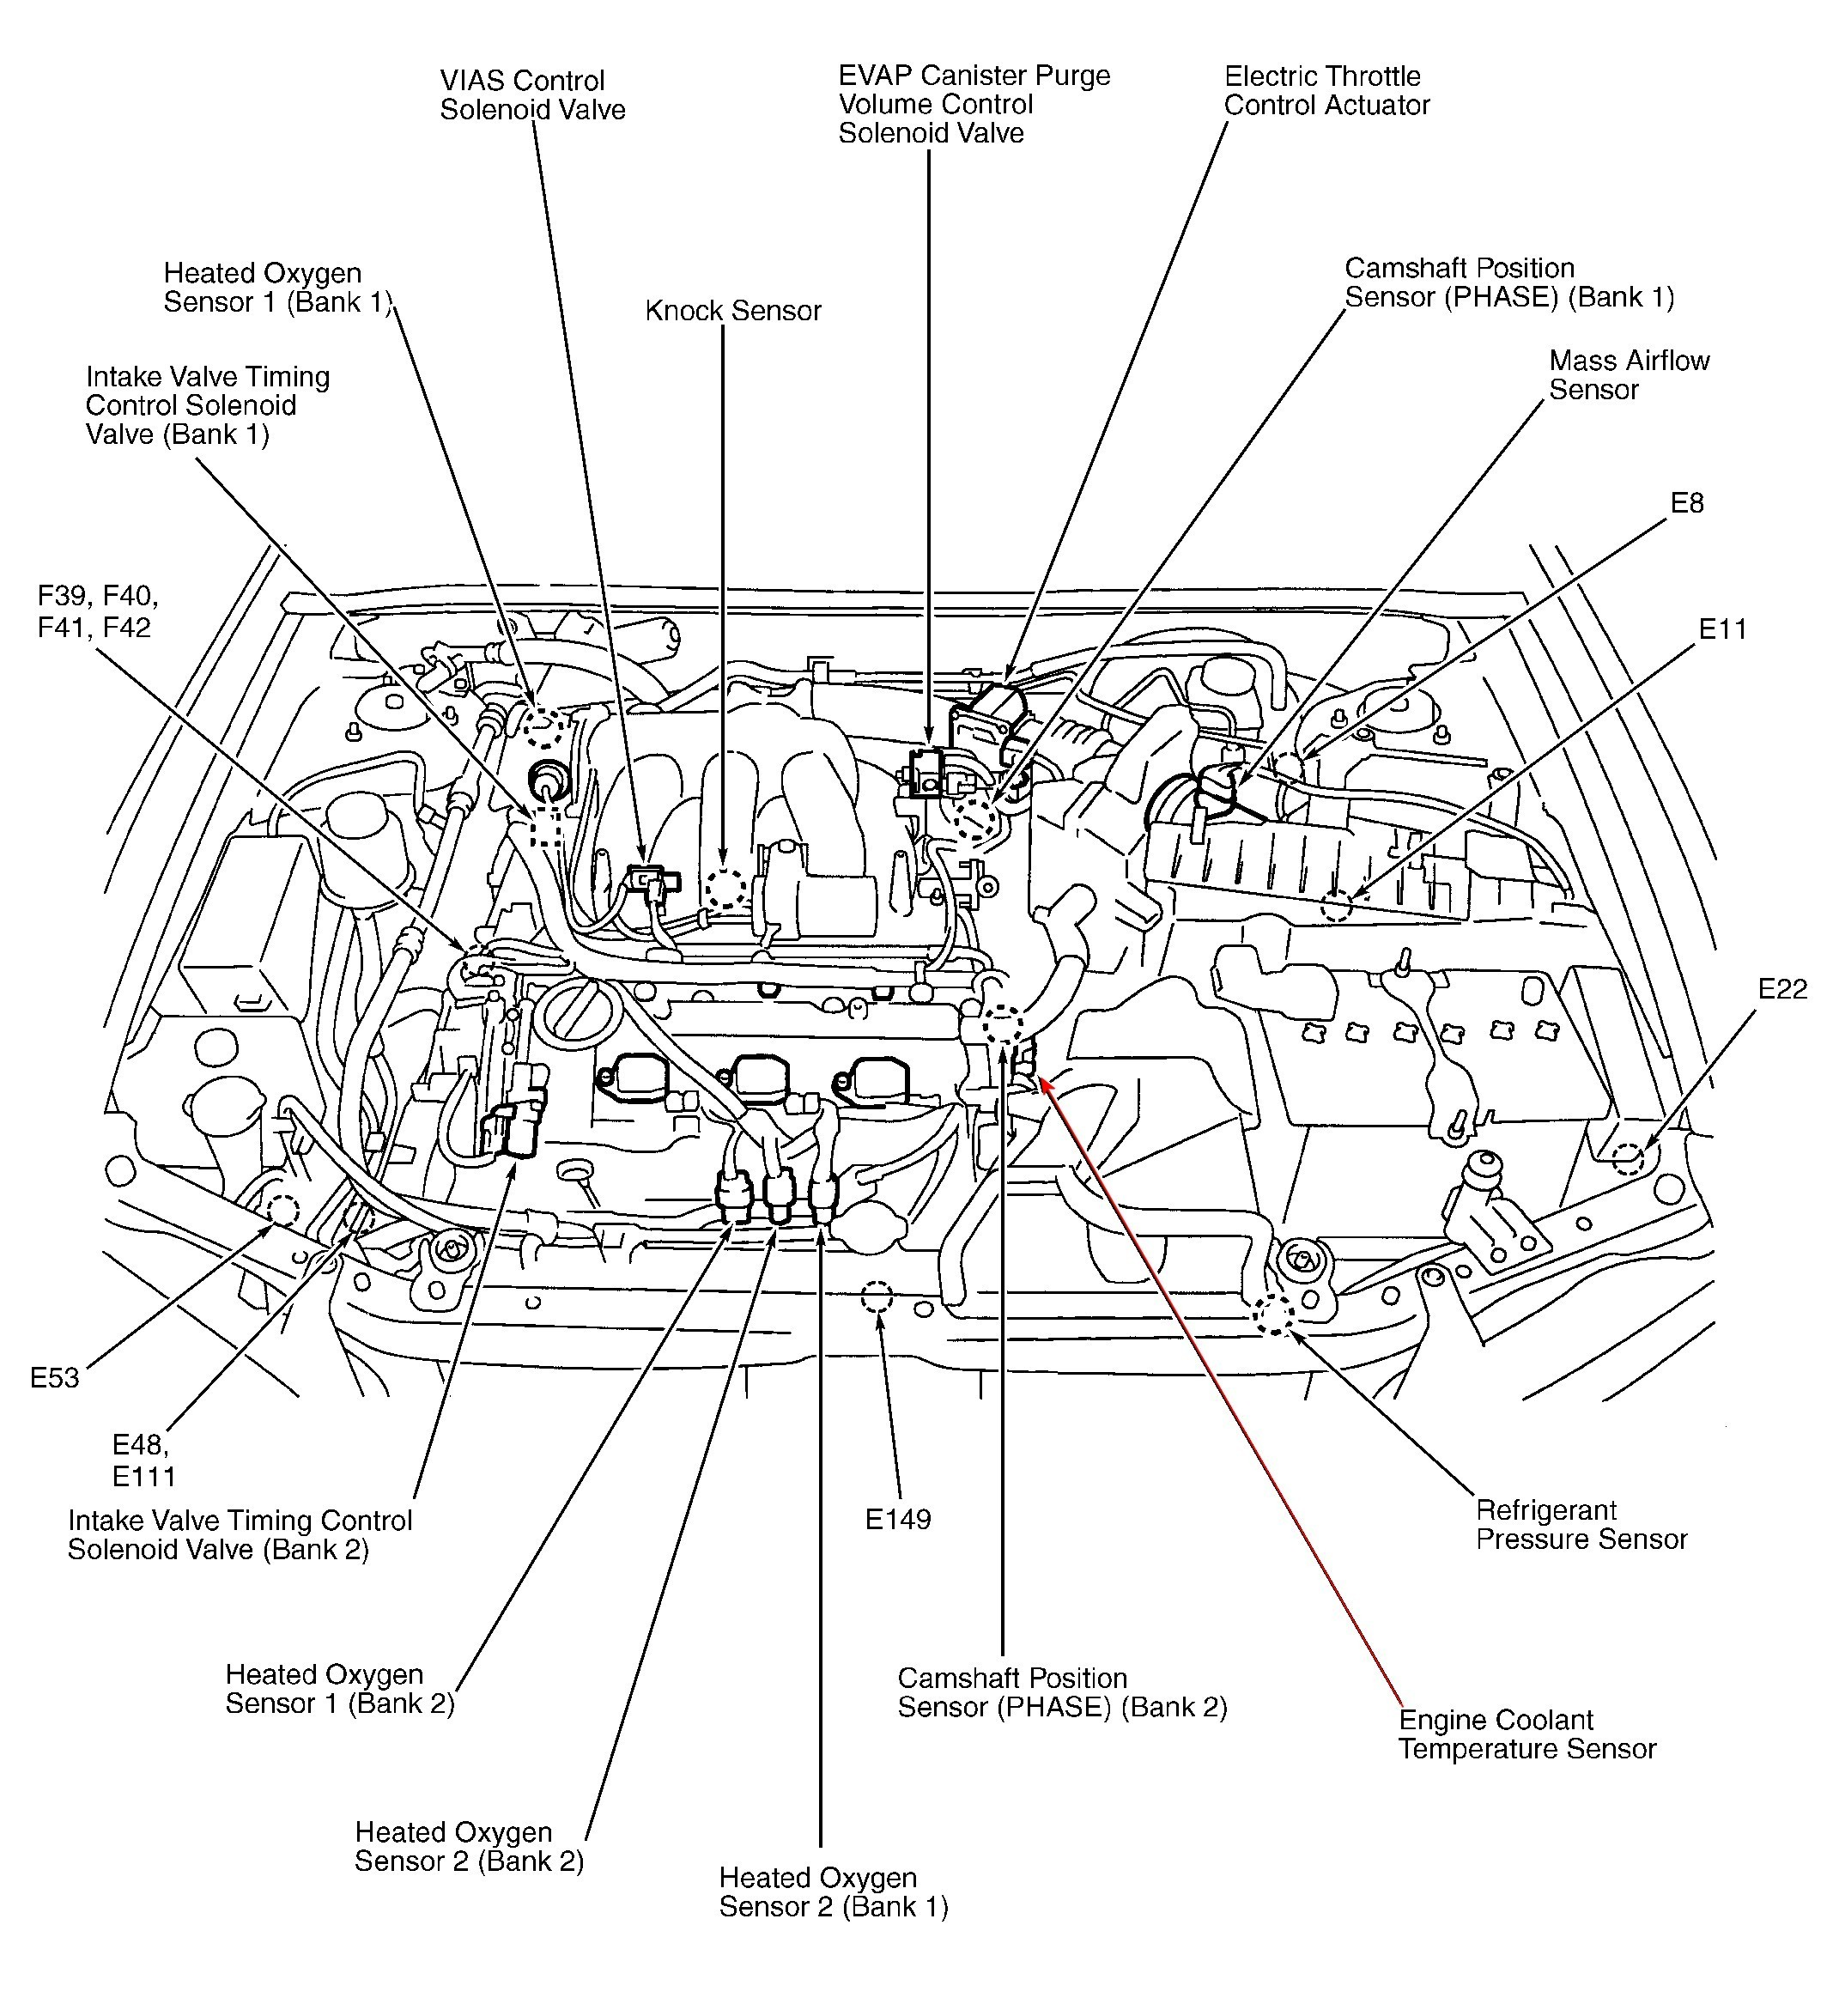 2010 Dodge Caravan 2 4 Engine Diagram - good #1st wiring diagram